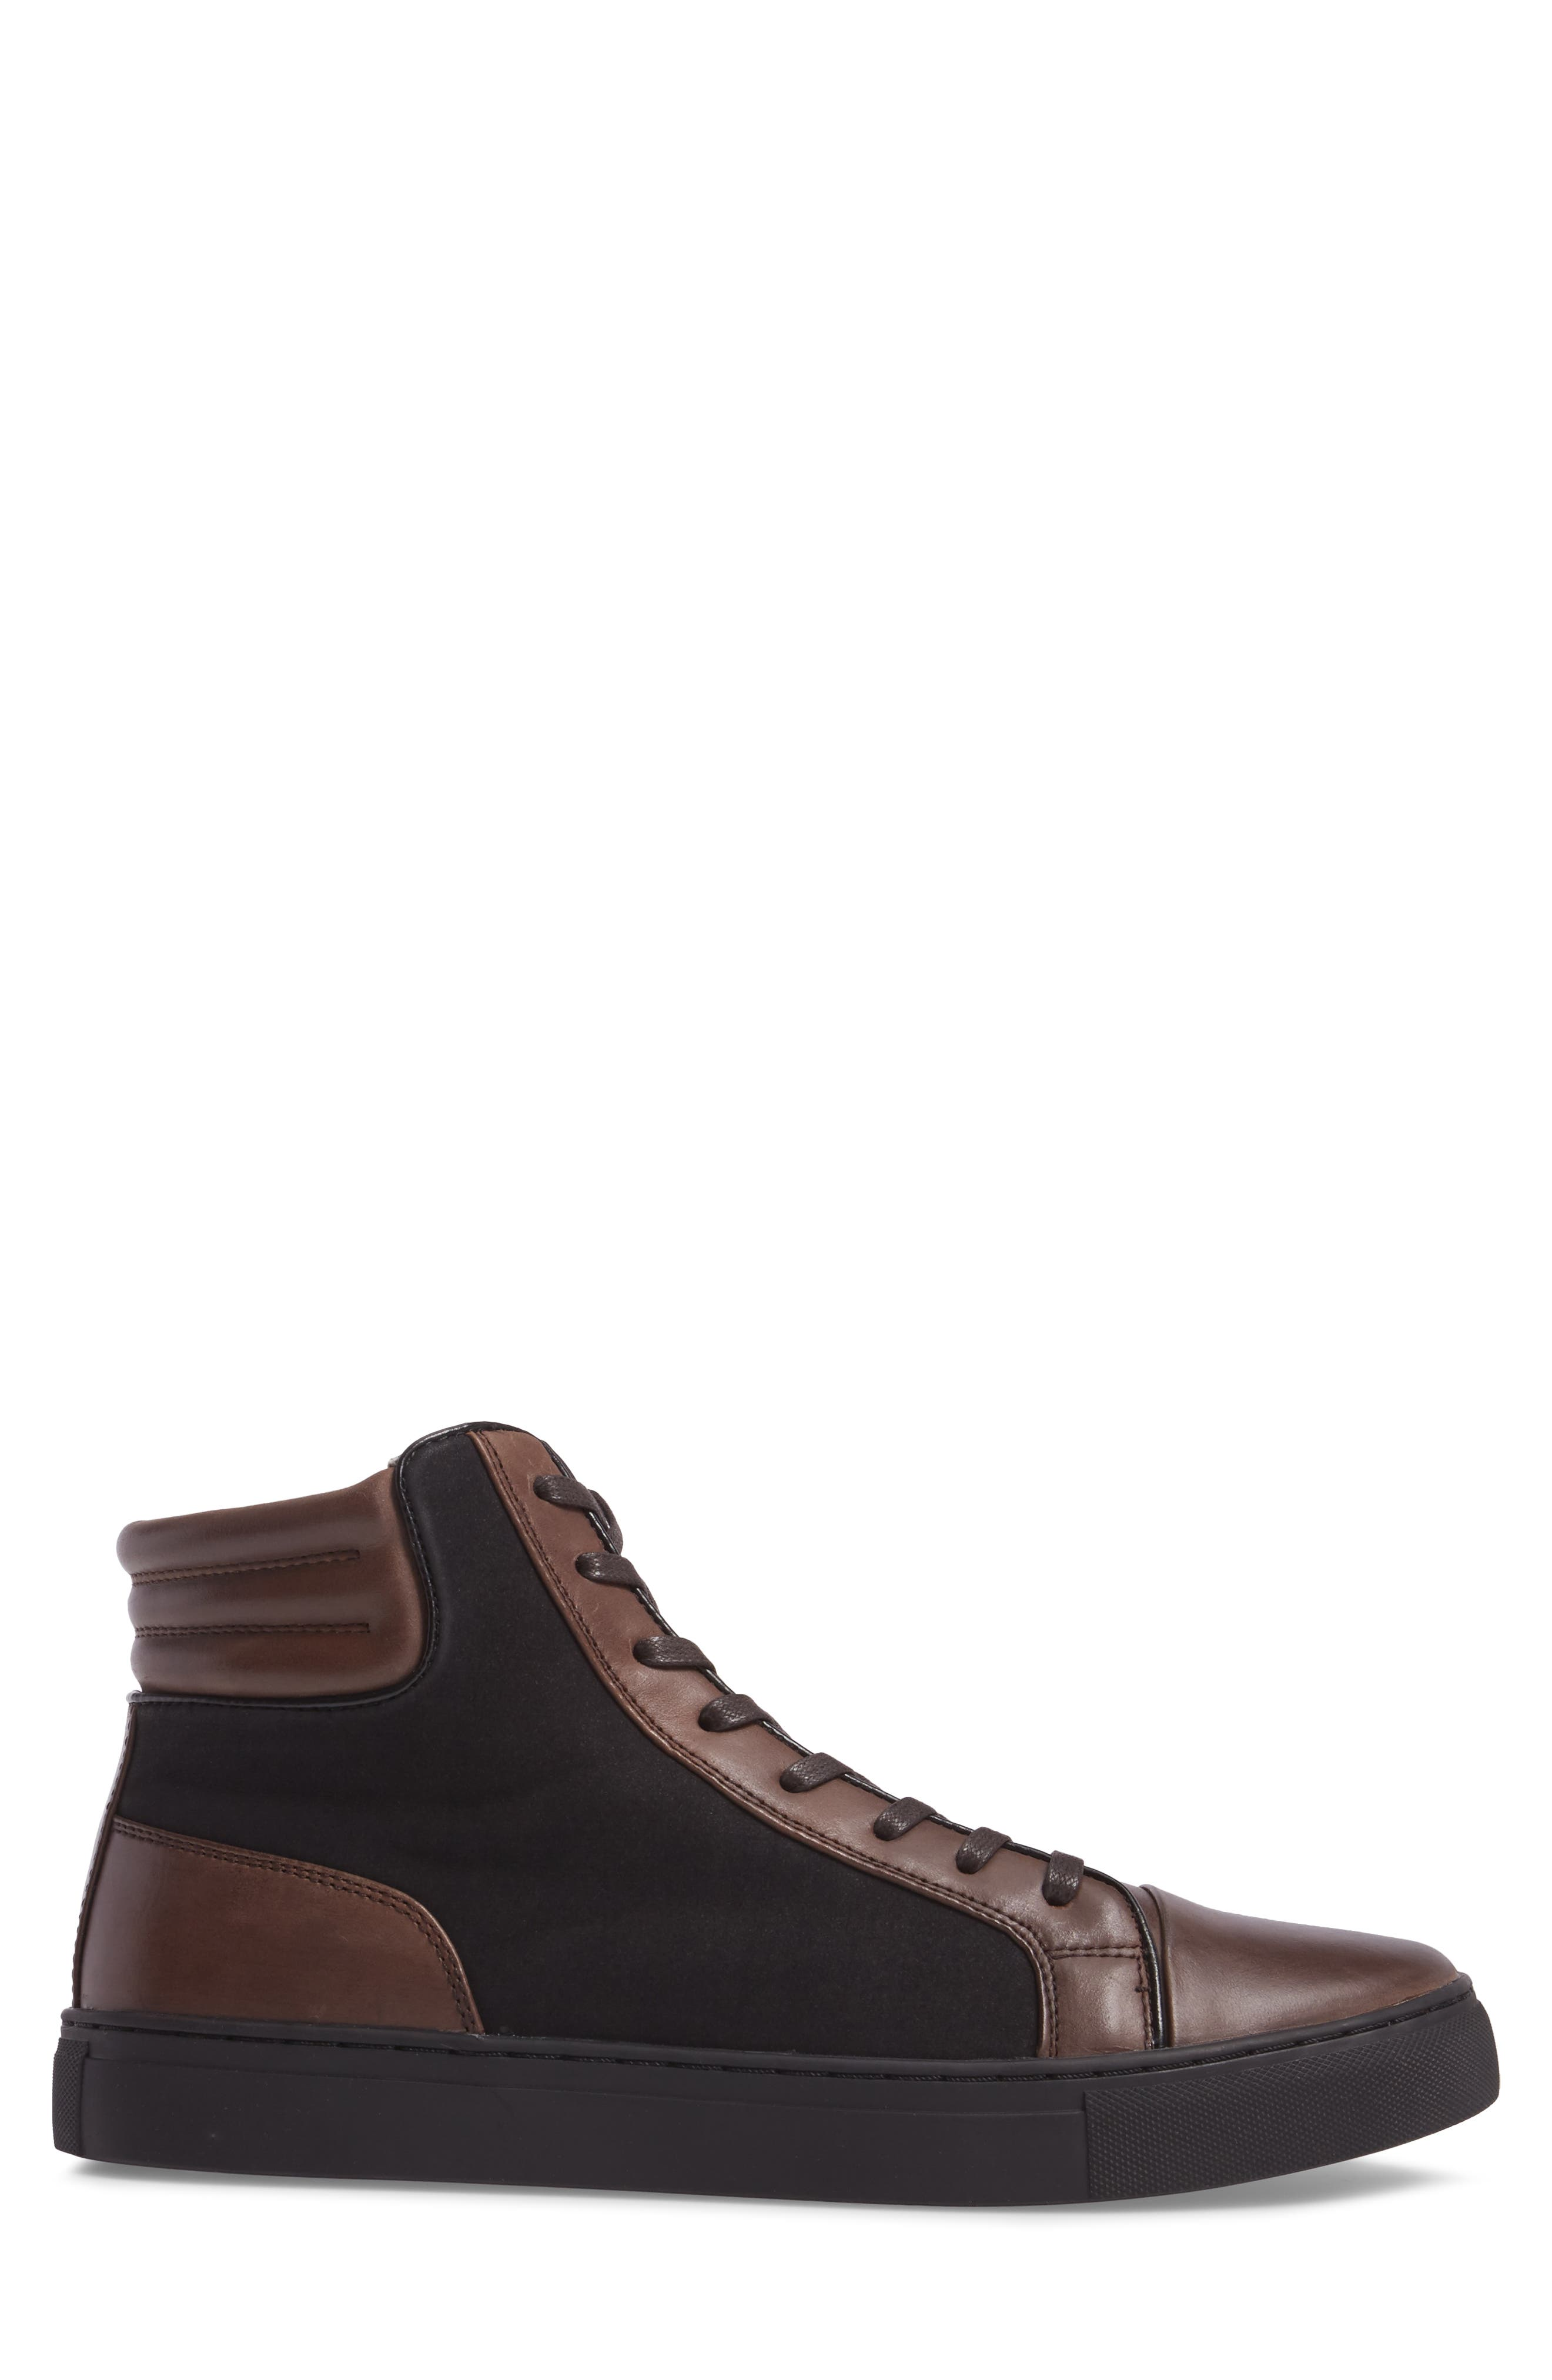 Kenneth Cole Reaction Sneaker,                             Alternate thumbnail 3, color,                             Brown/ Black